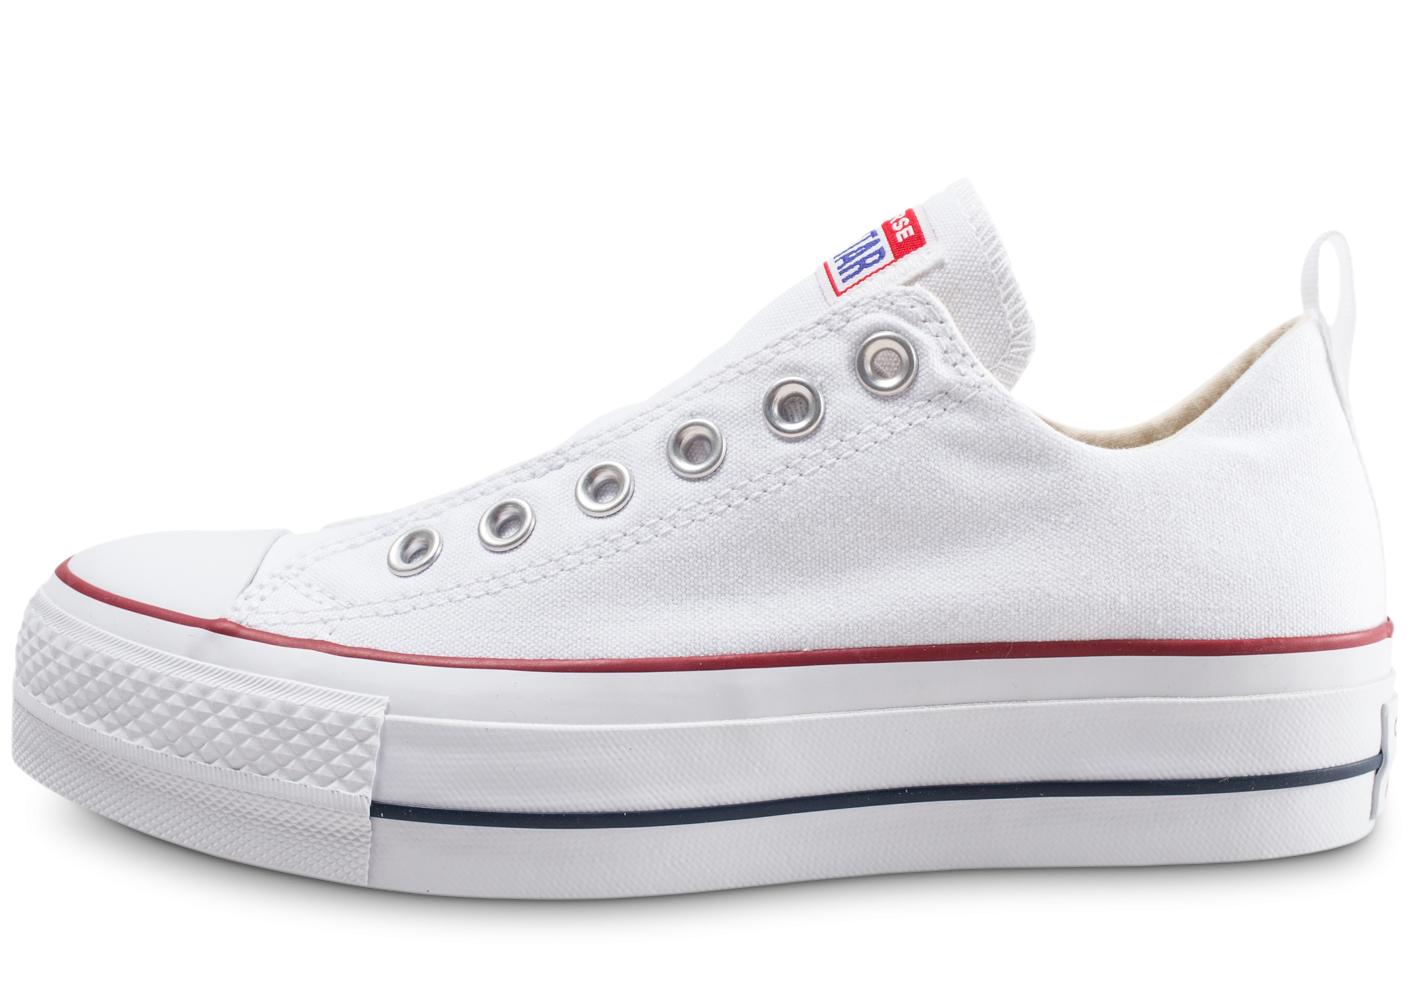 converse chuck taylor all star blanche femme